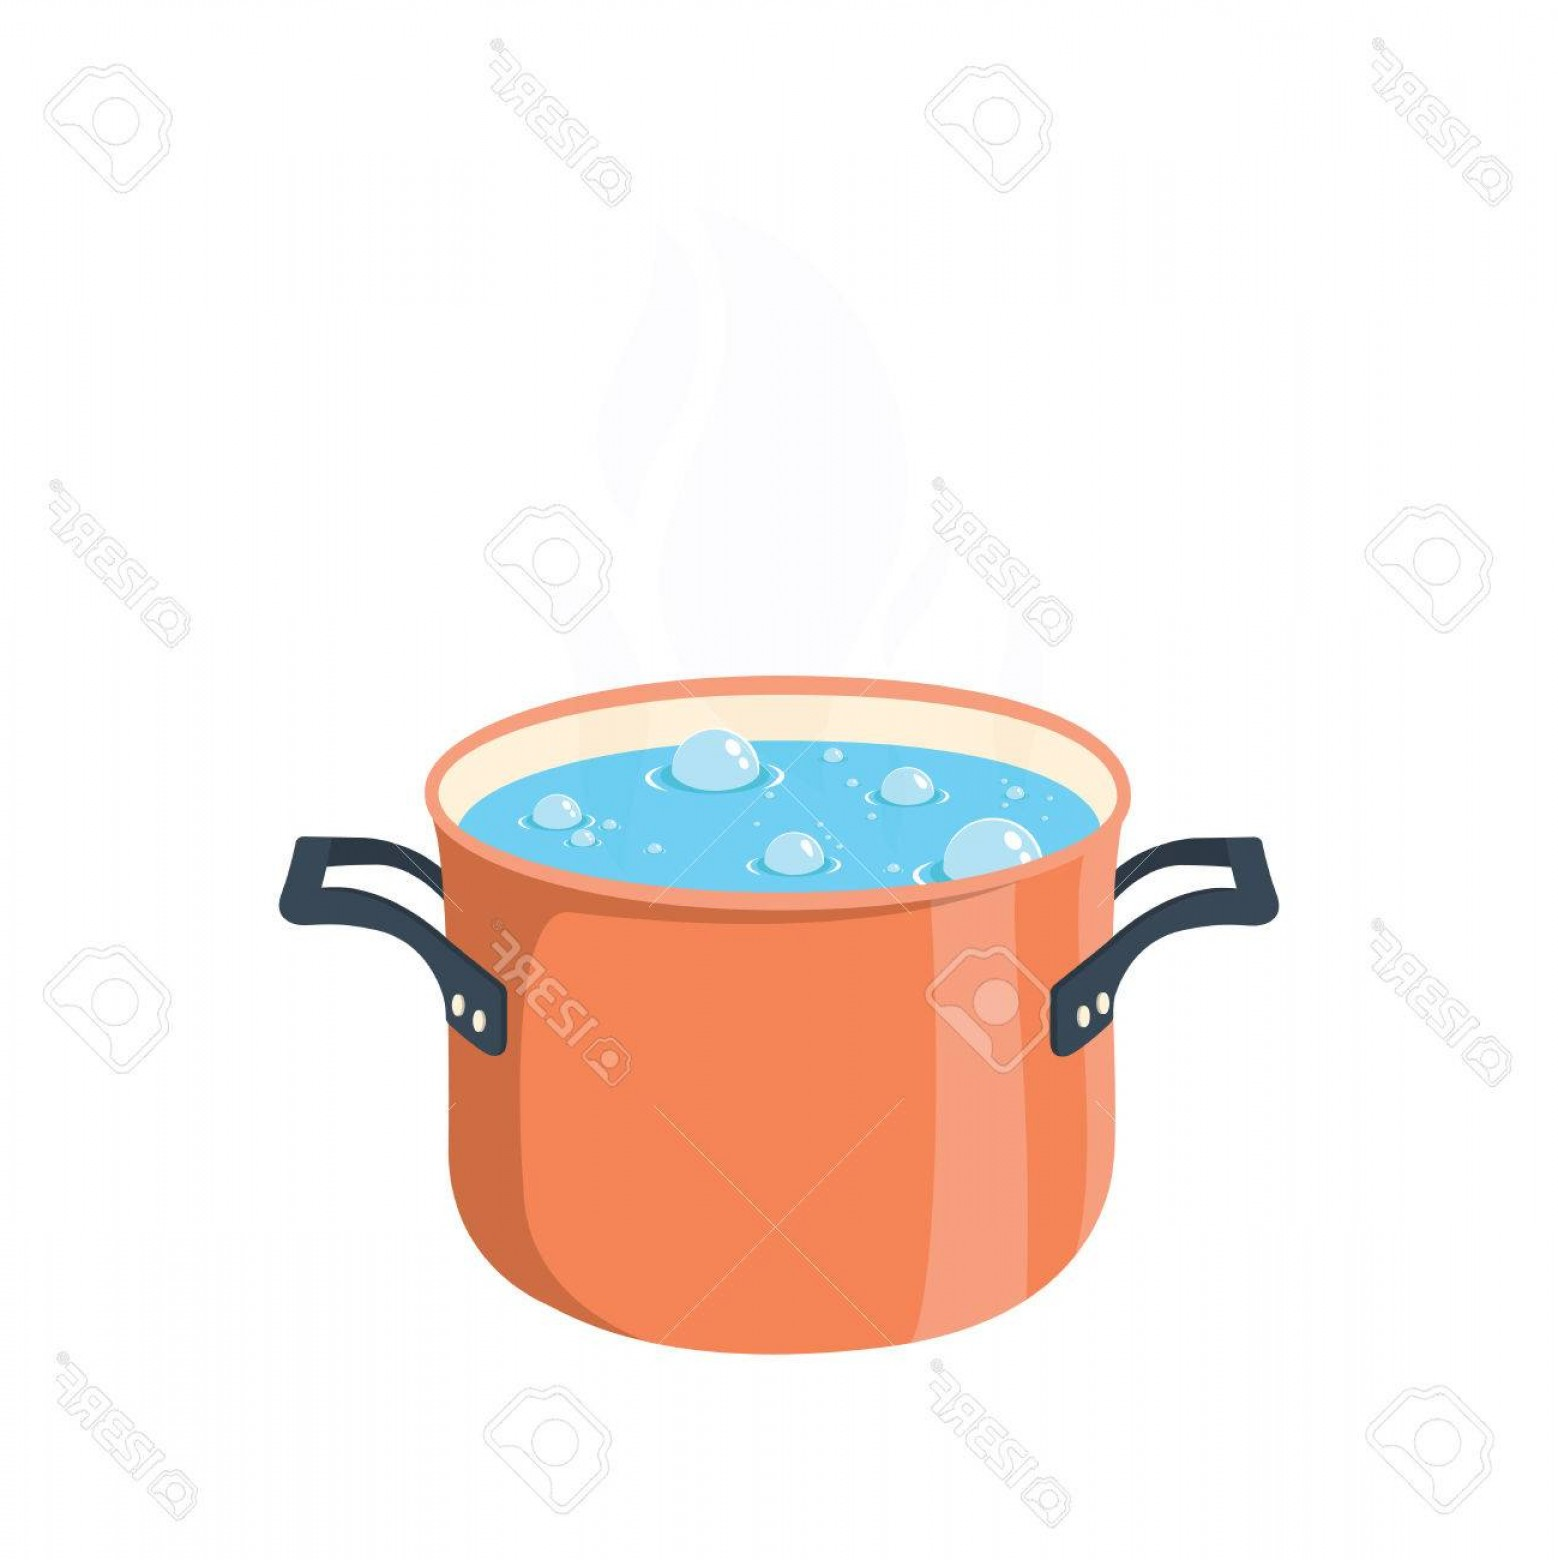 Big Cook With Cooking Pot Vector: Photostock Vector Boiling Water In Pan Red Cooking Pot On Stove With Water And Steam